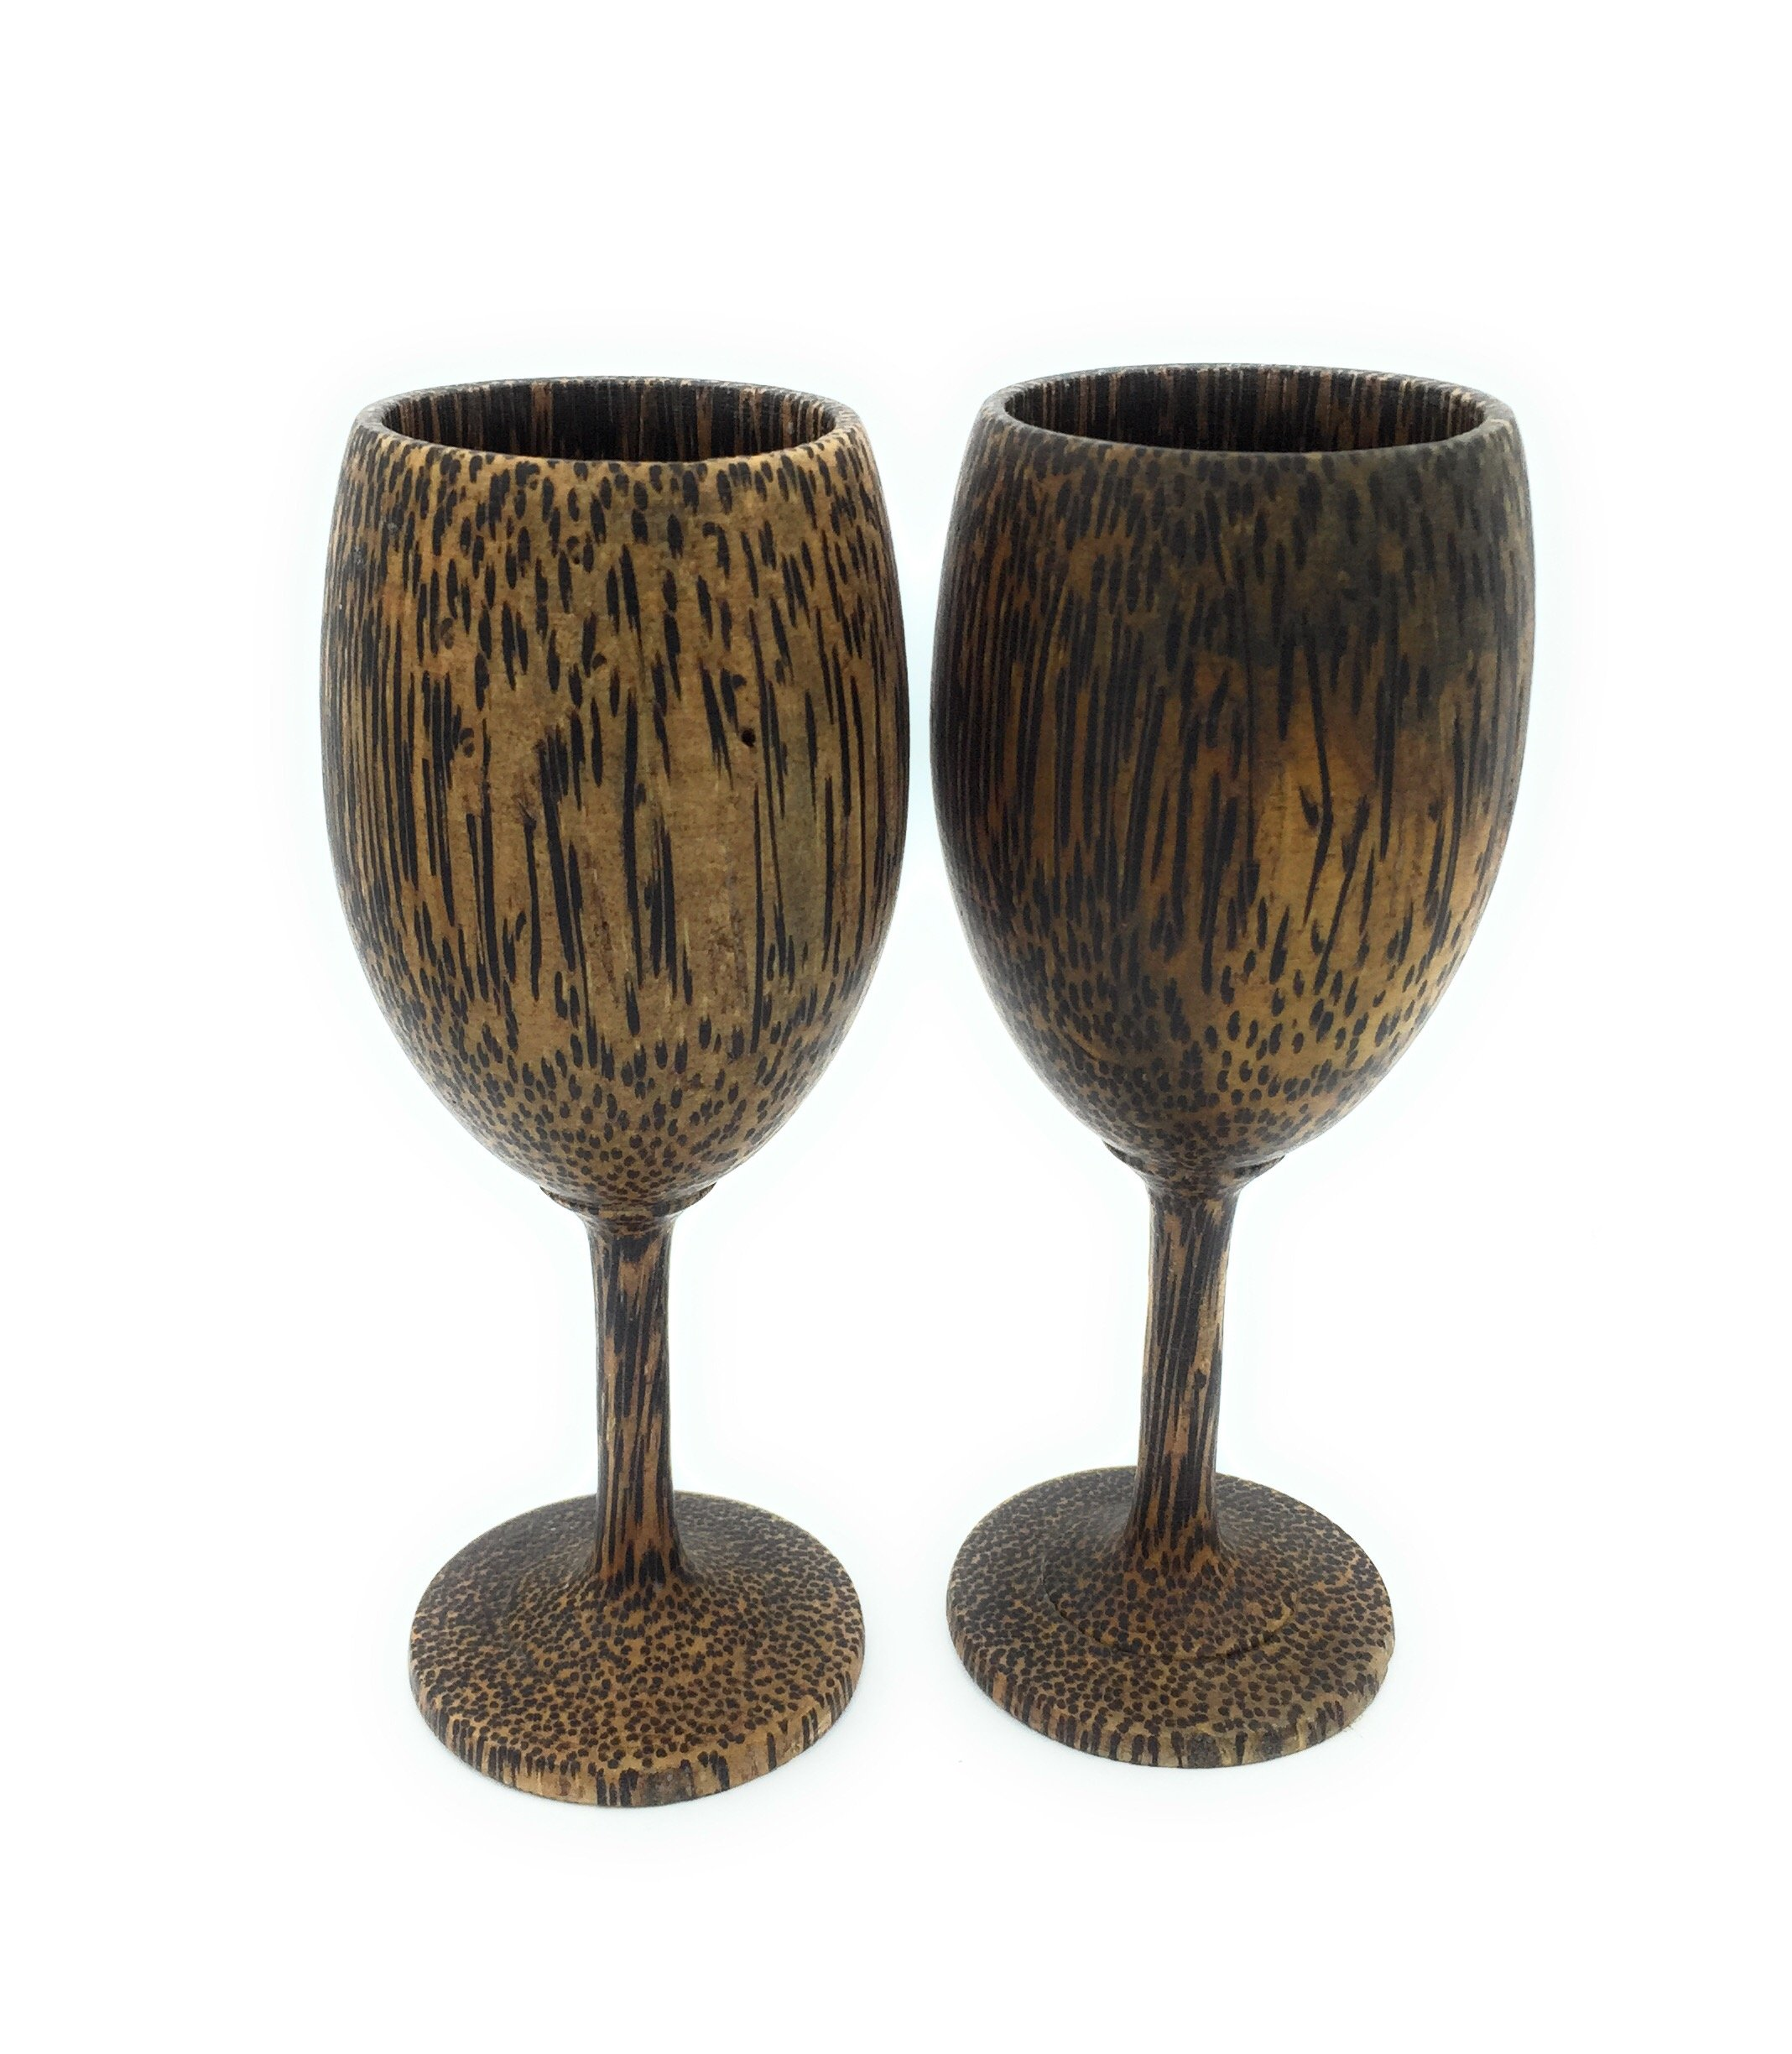 WD-Thailand Lot of 2 set Vintage style Handmade Palm wood Wine Glass Glasses Palm wooden Natural color- Great gift.